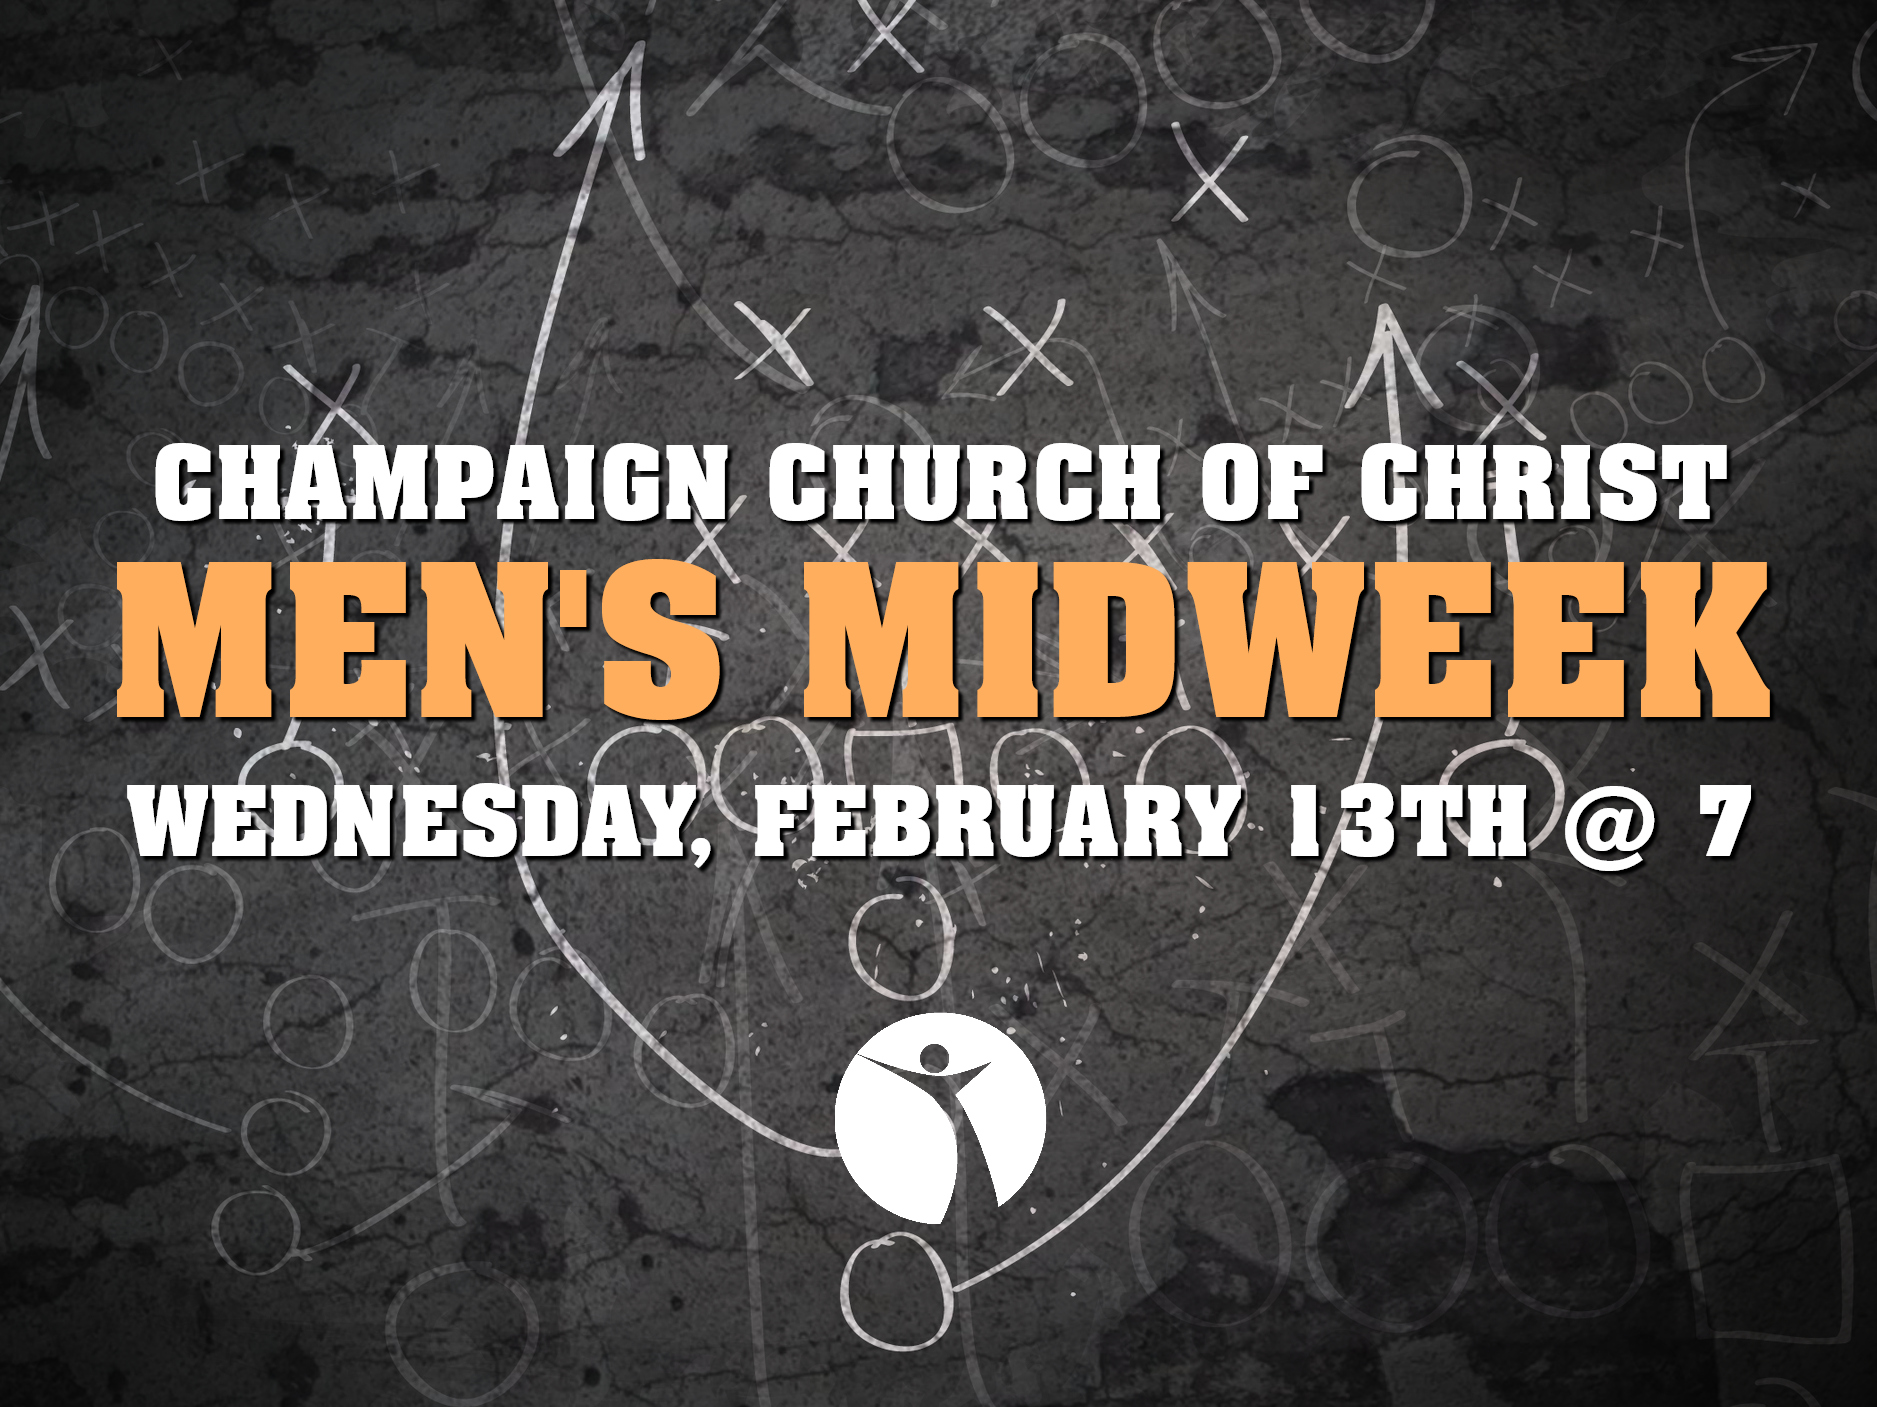 Men's Midweek on Wednesday, February 13th